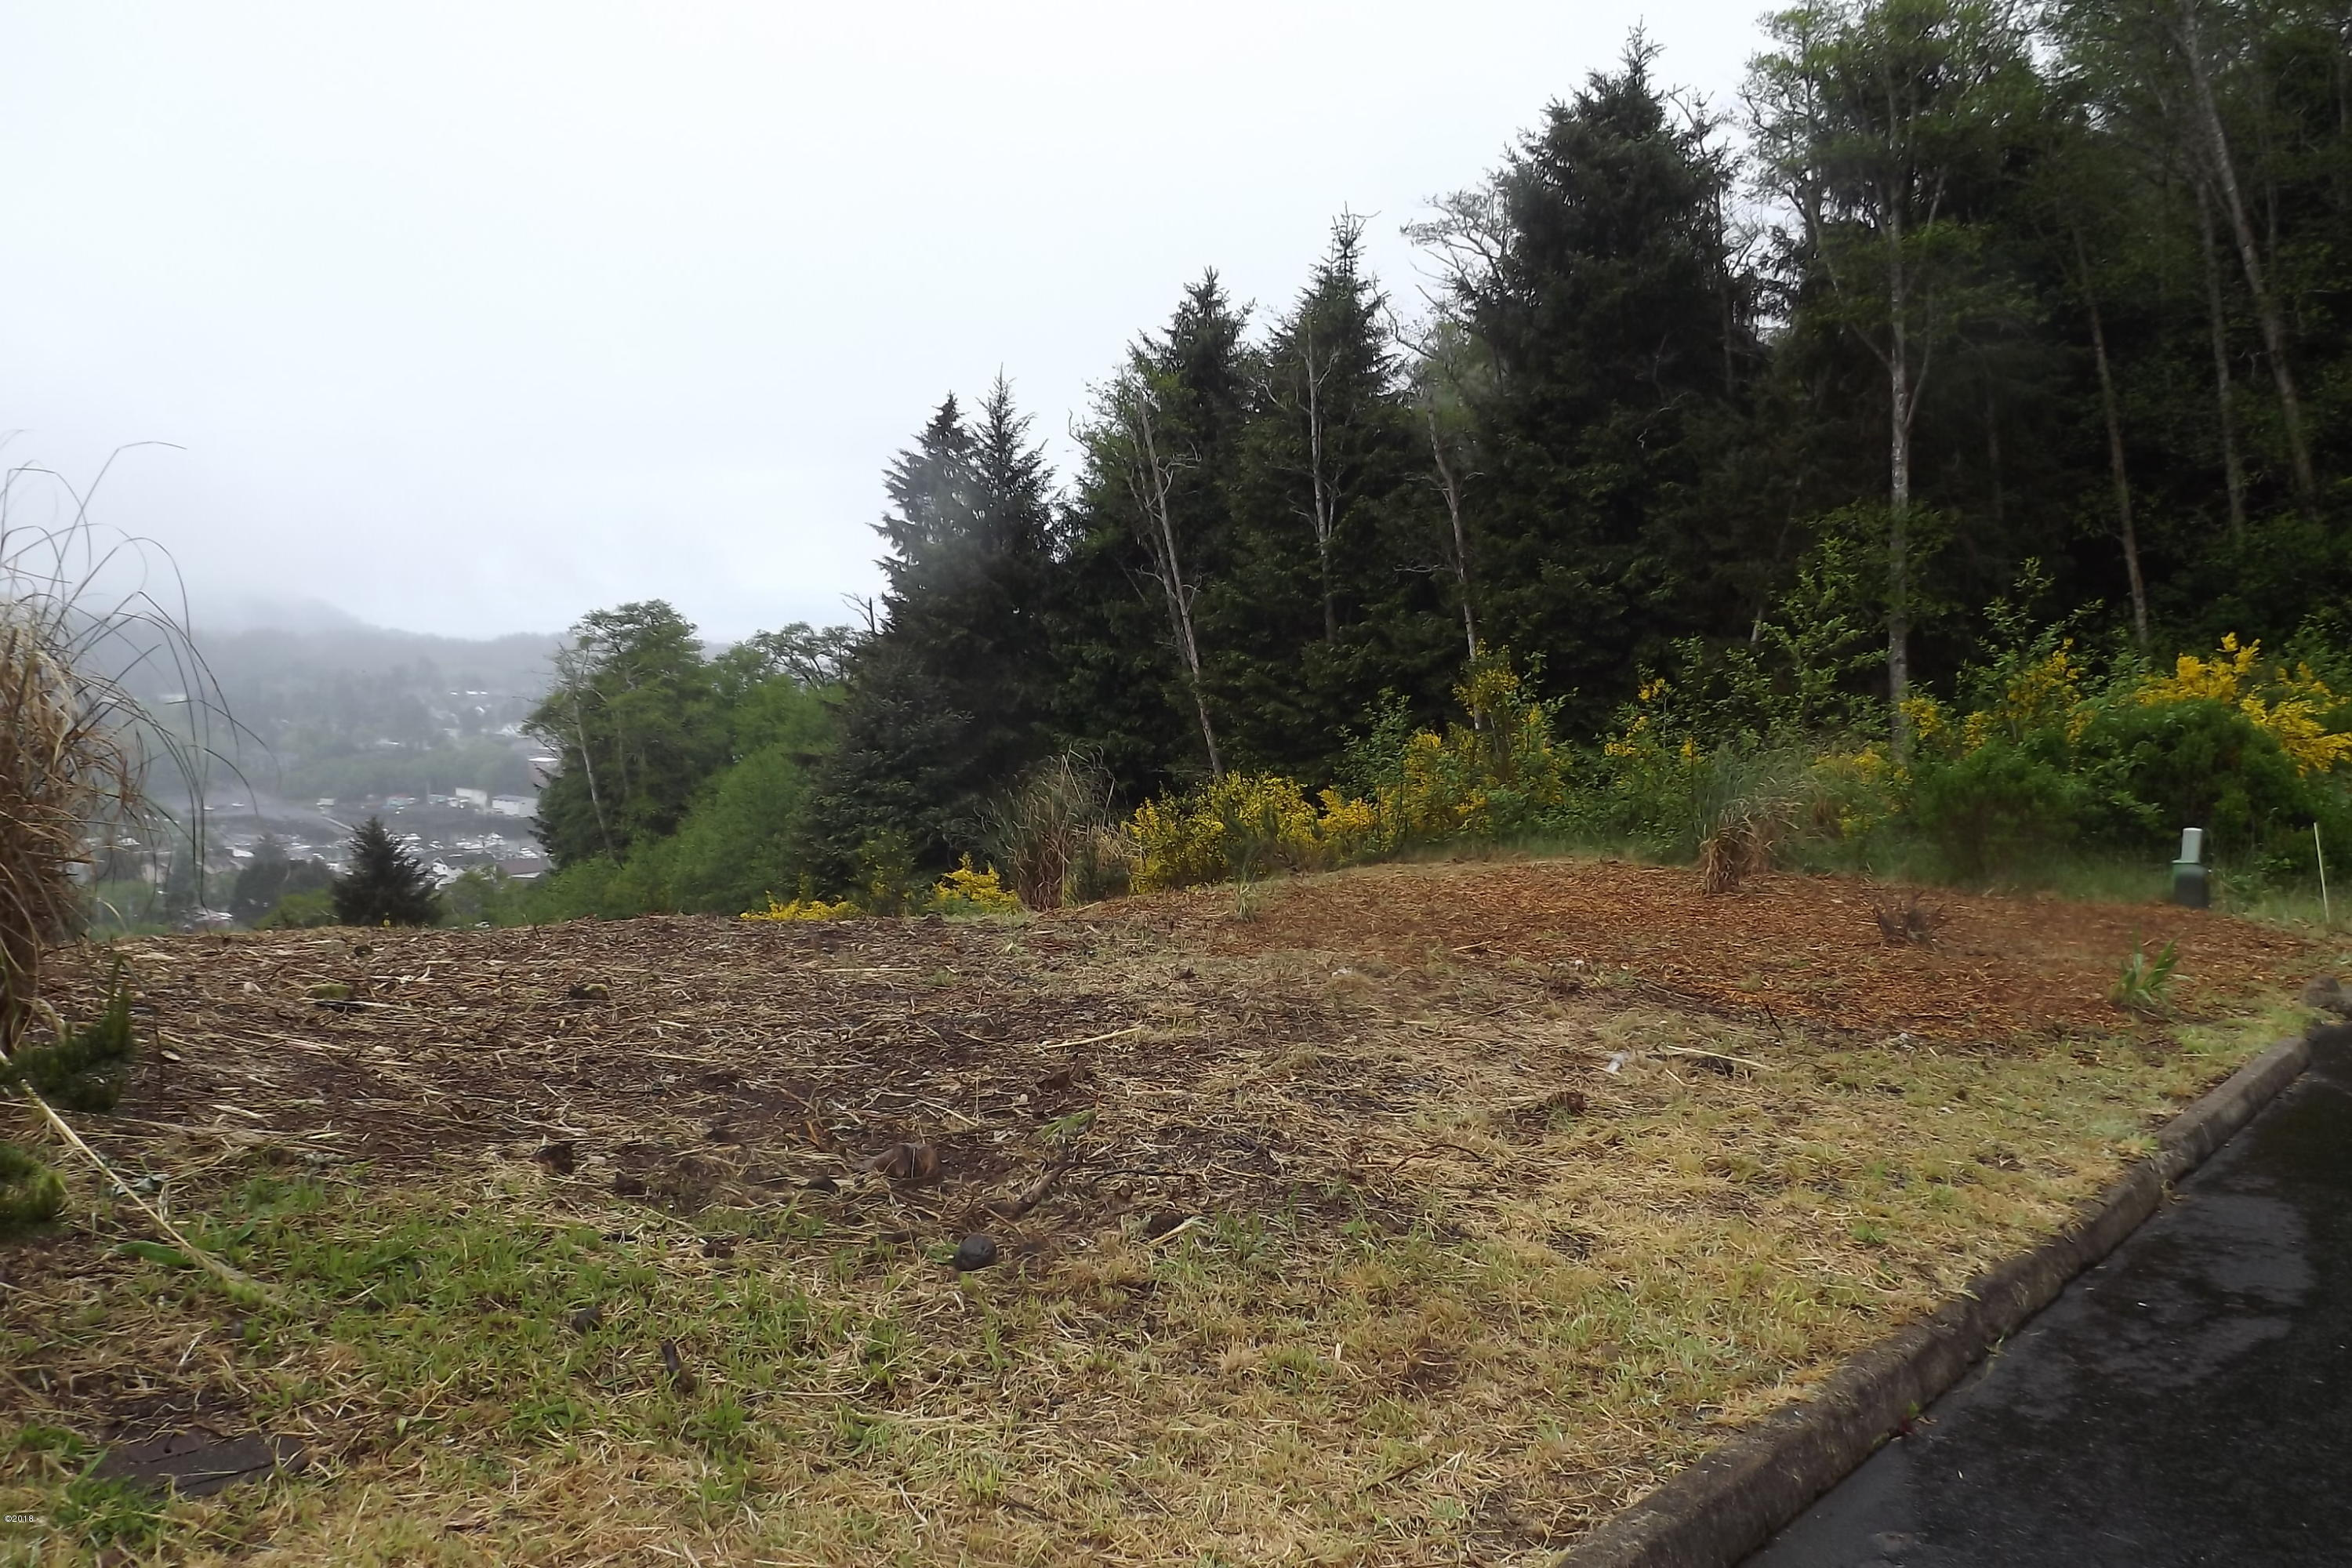 LOT 44 Spring St, Depoe Bay, OR 97341 - Lot from street